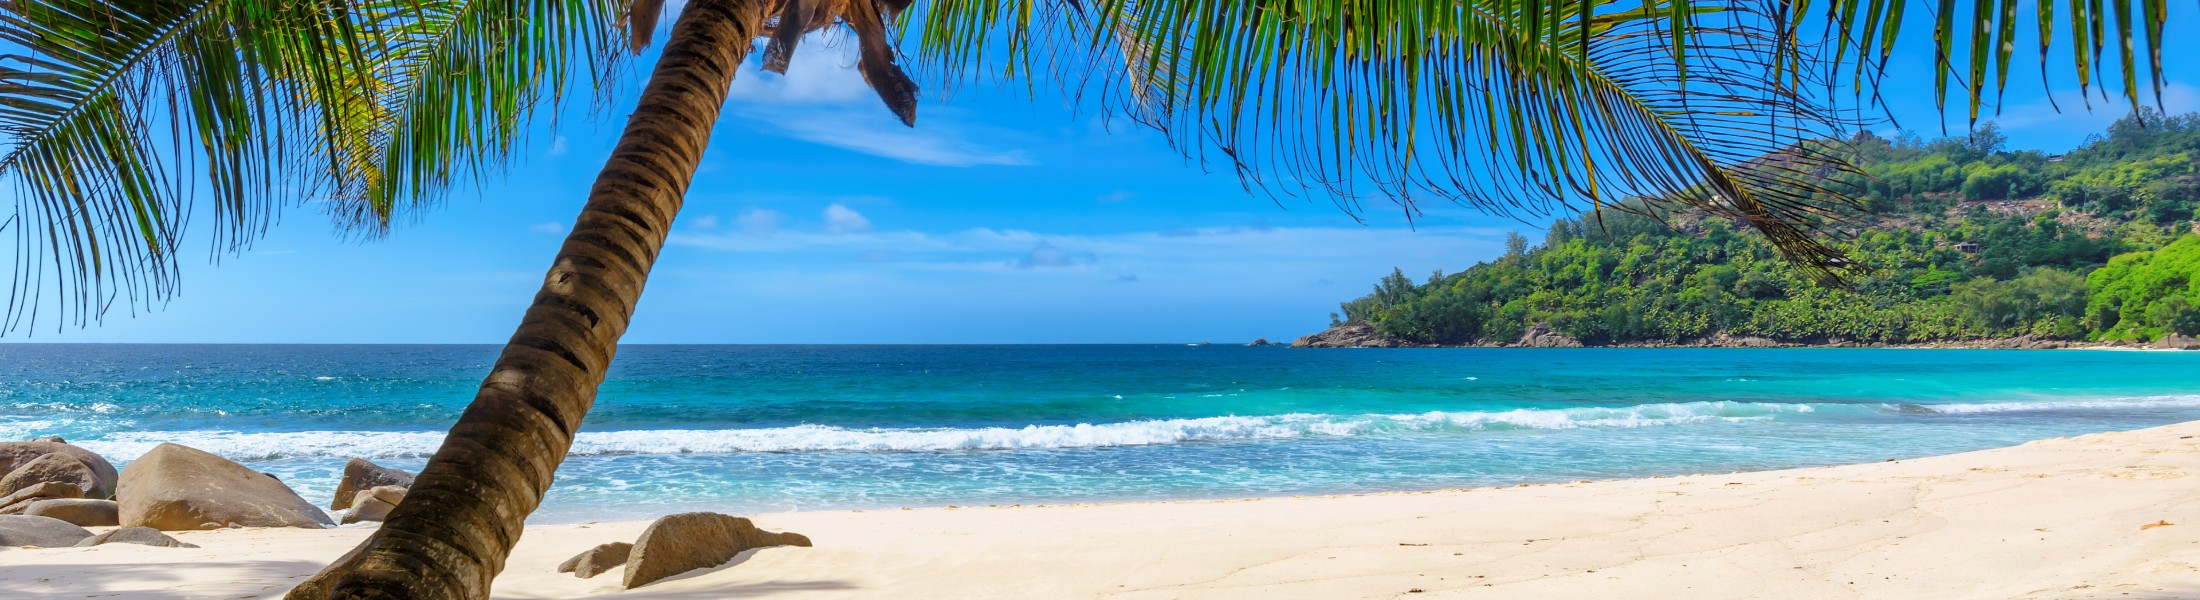 White sand beach and palm trees in Barbados